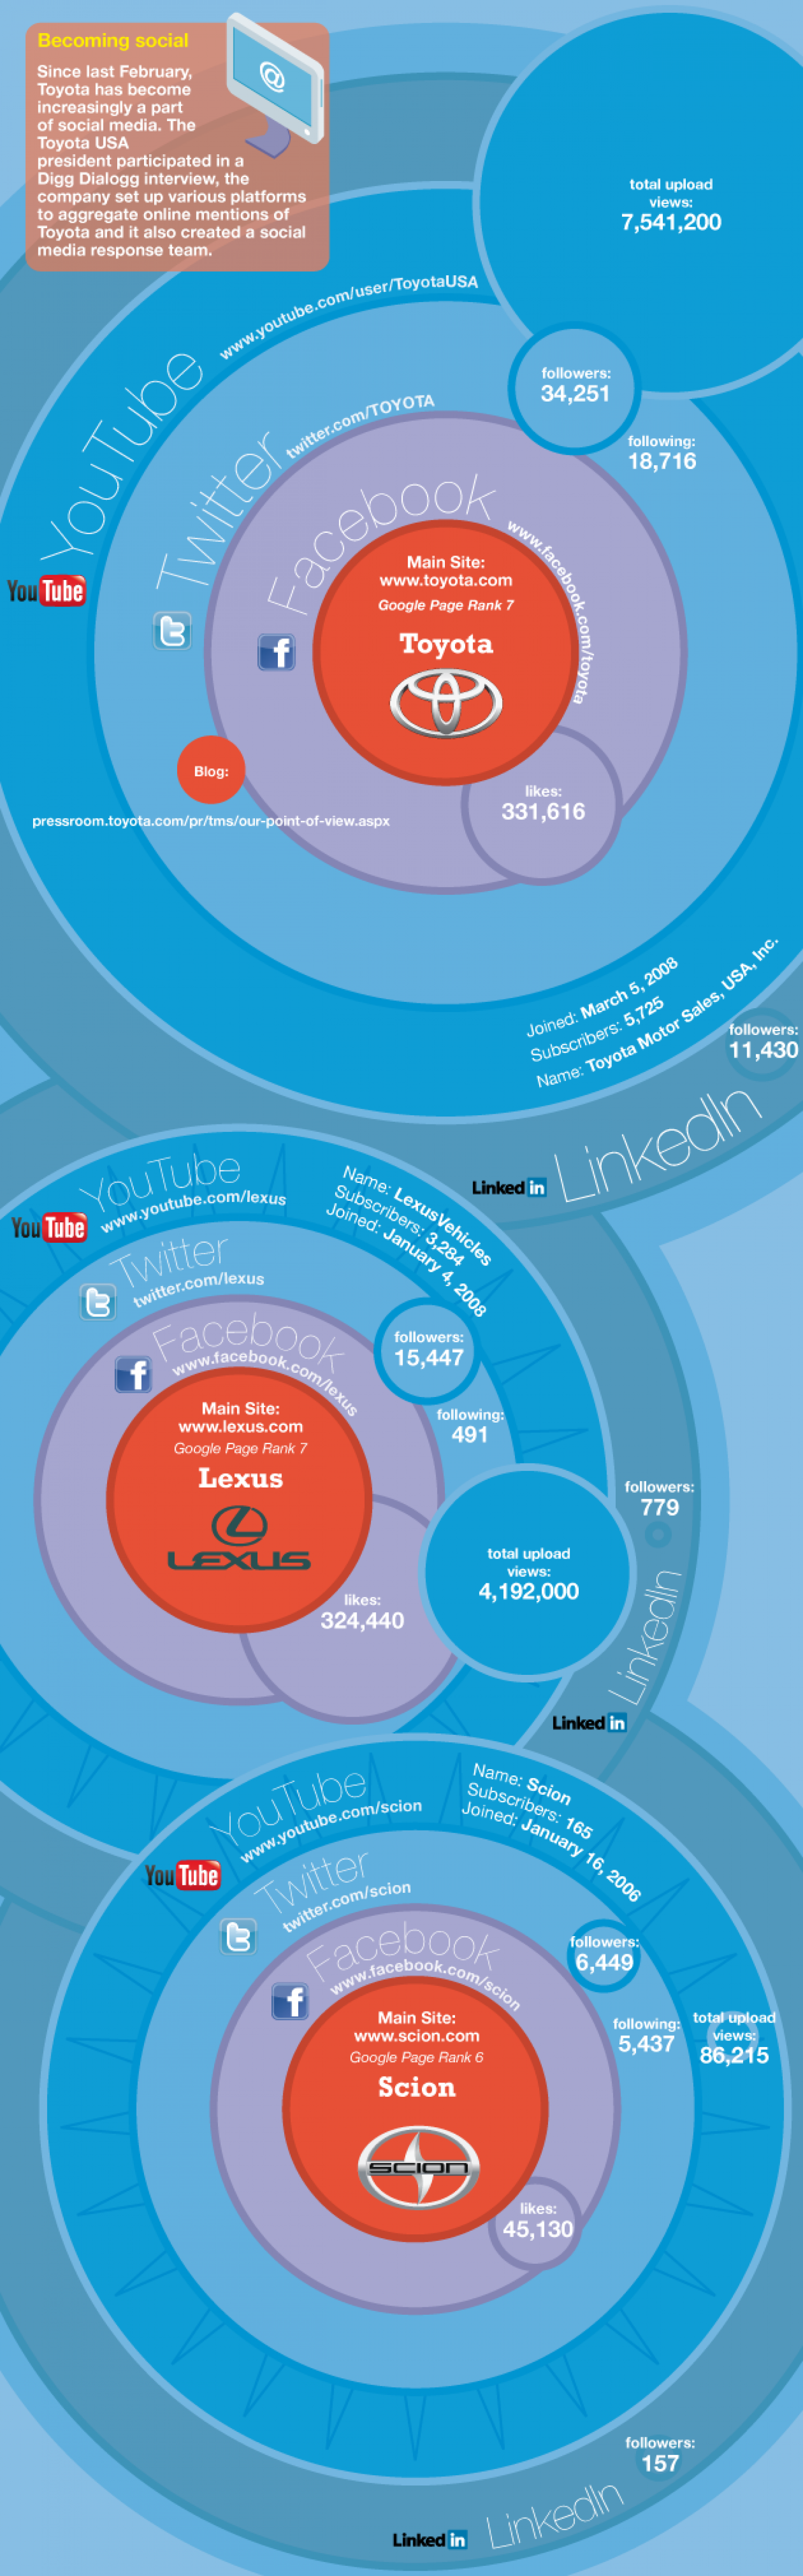 How the Auto Industry Is Embracing Social Media  Infographic